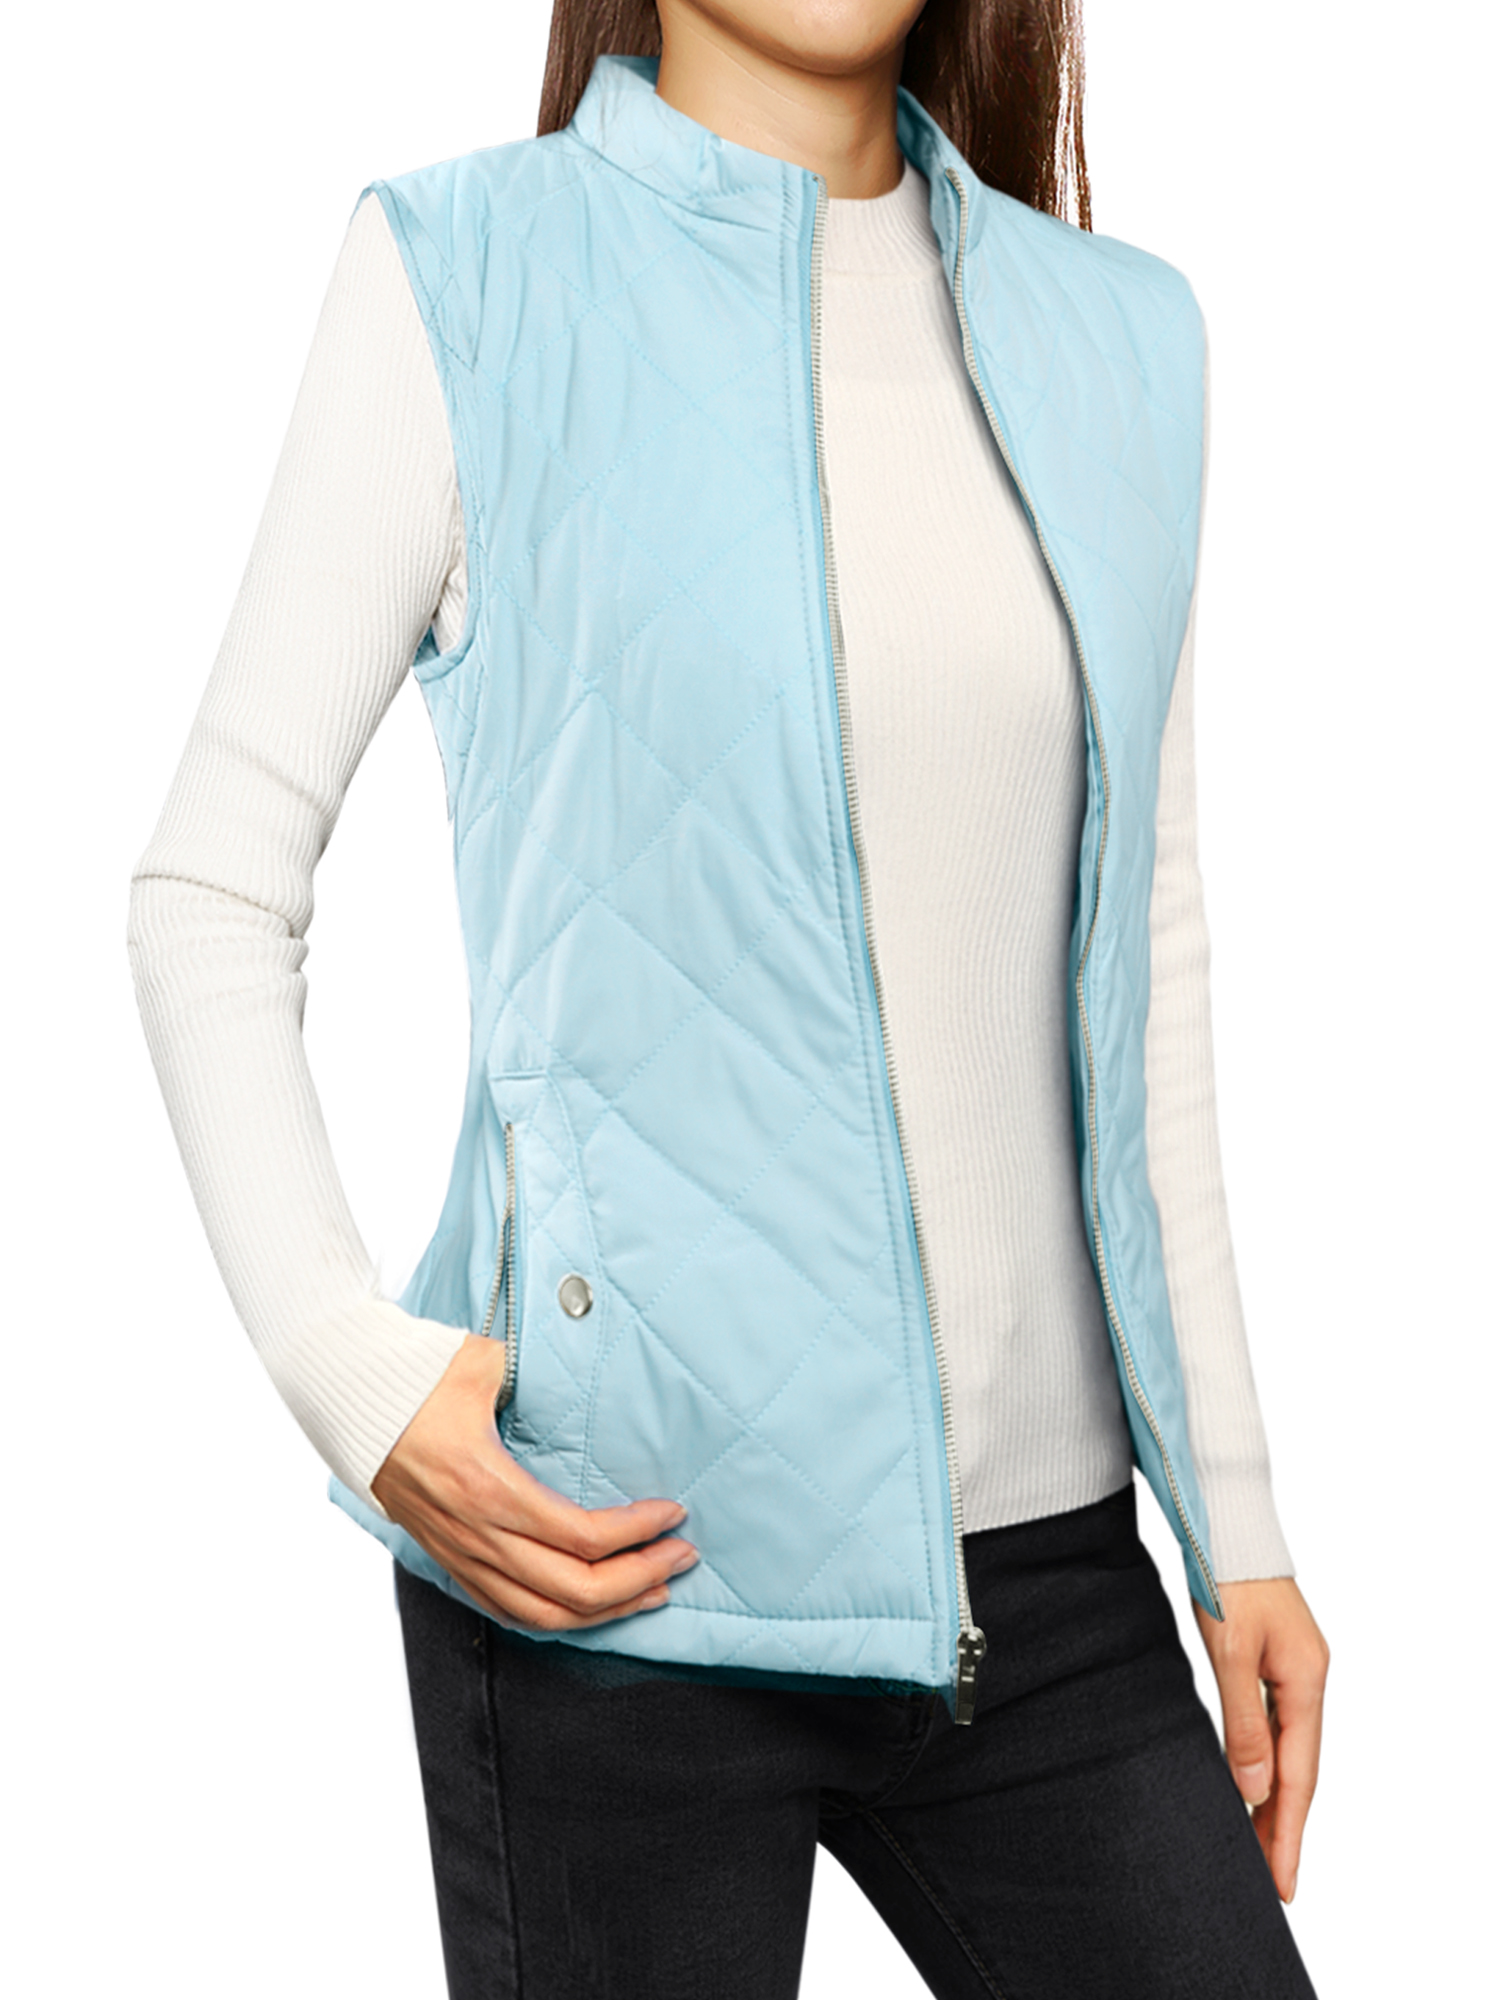 Allegra K Woman Zip Up Front Pockets Quilted Padded Vest Blue M (US 10)